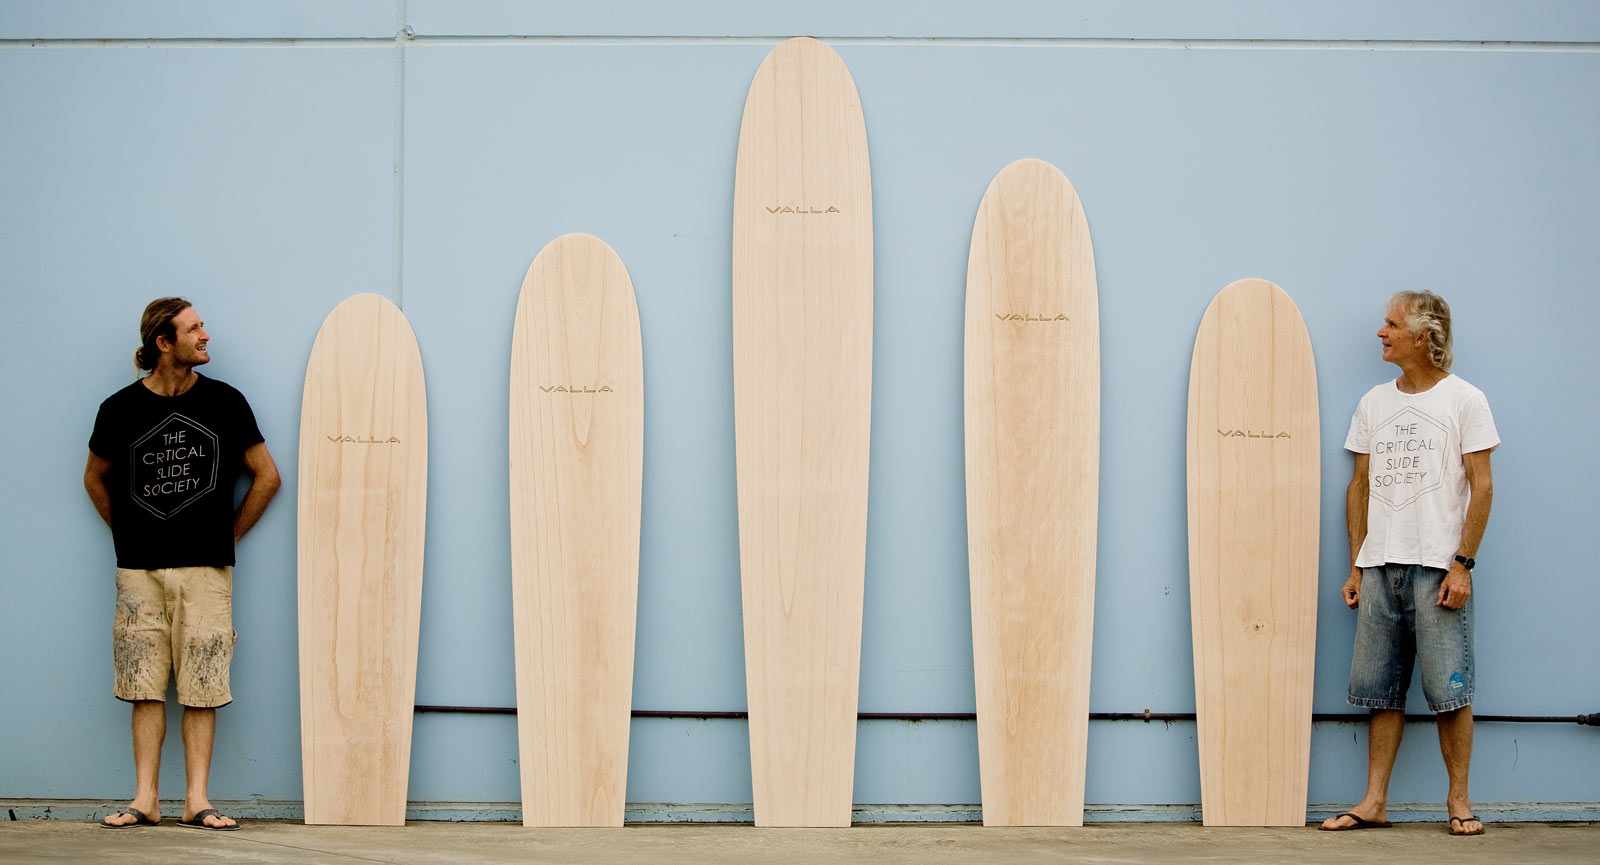 valla-surfboards-valla-beach